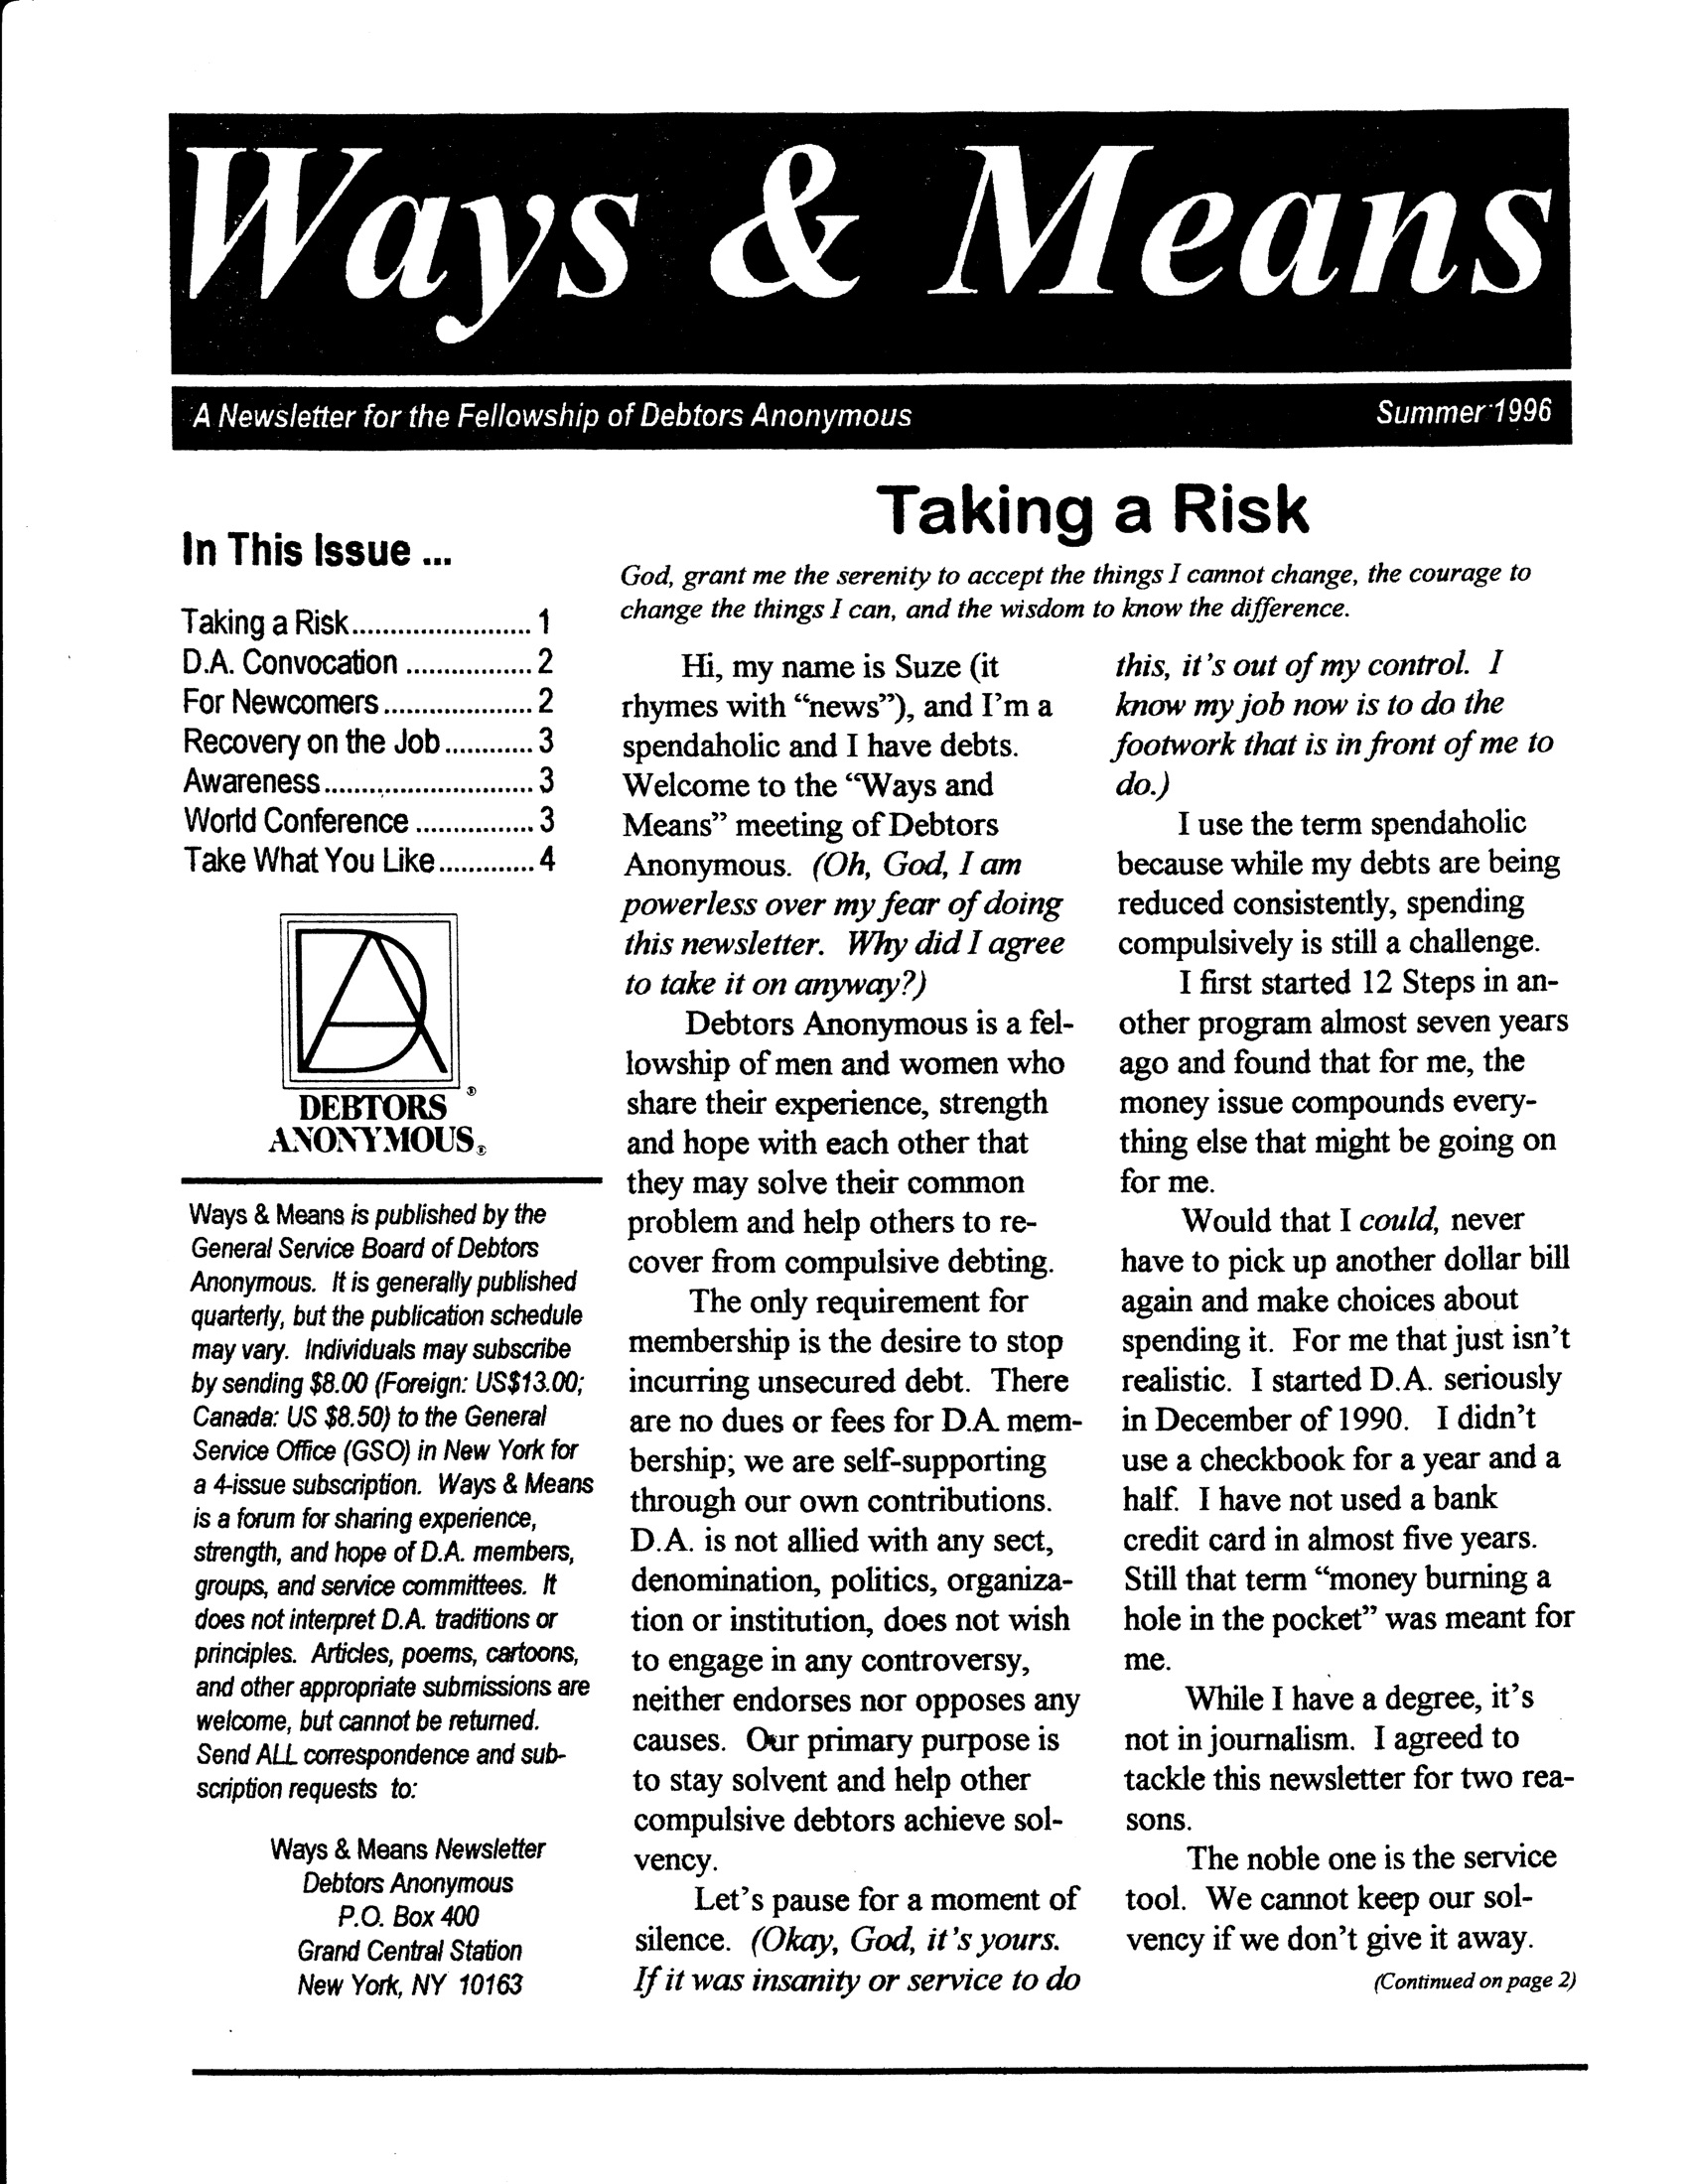 Ways & Means 3rd QTR 1996